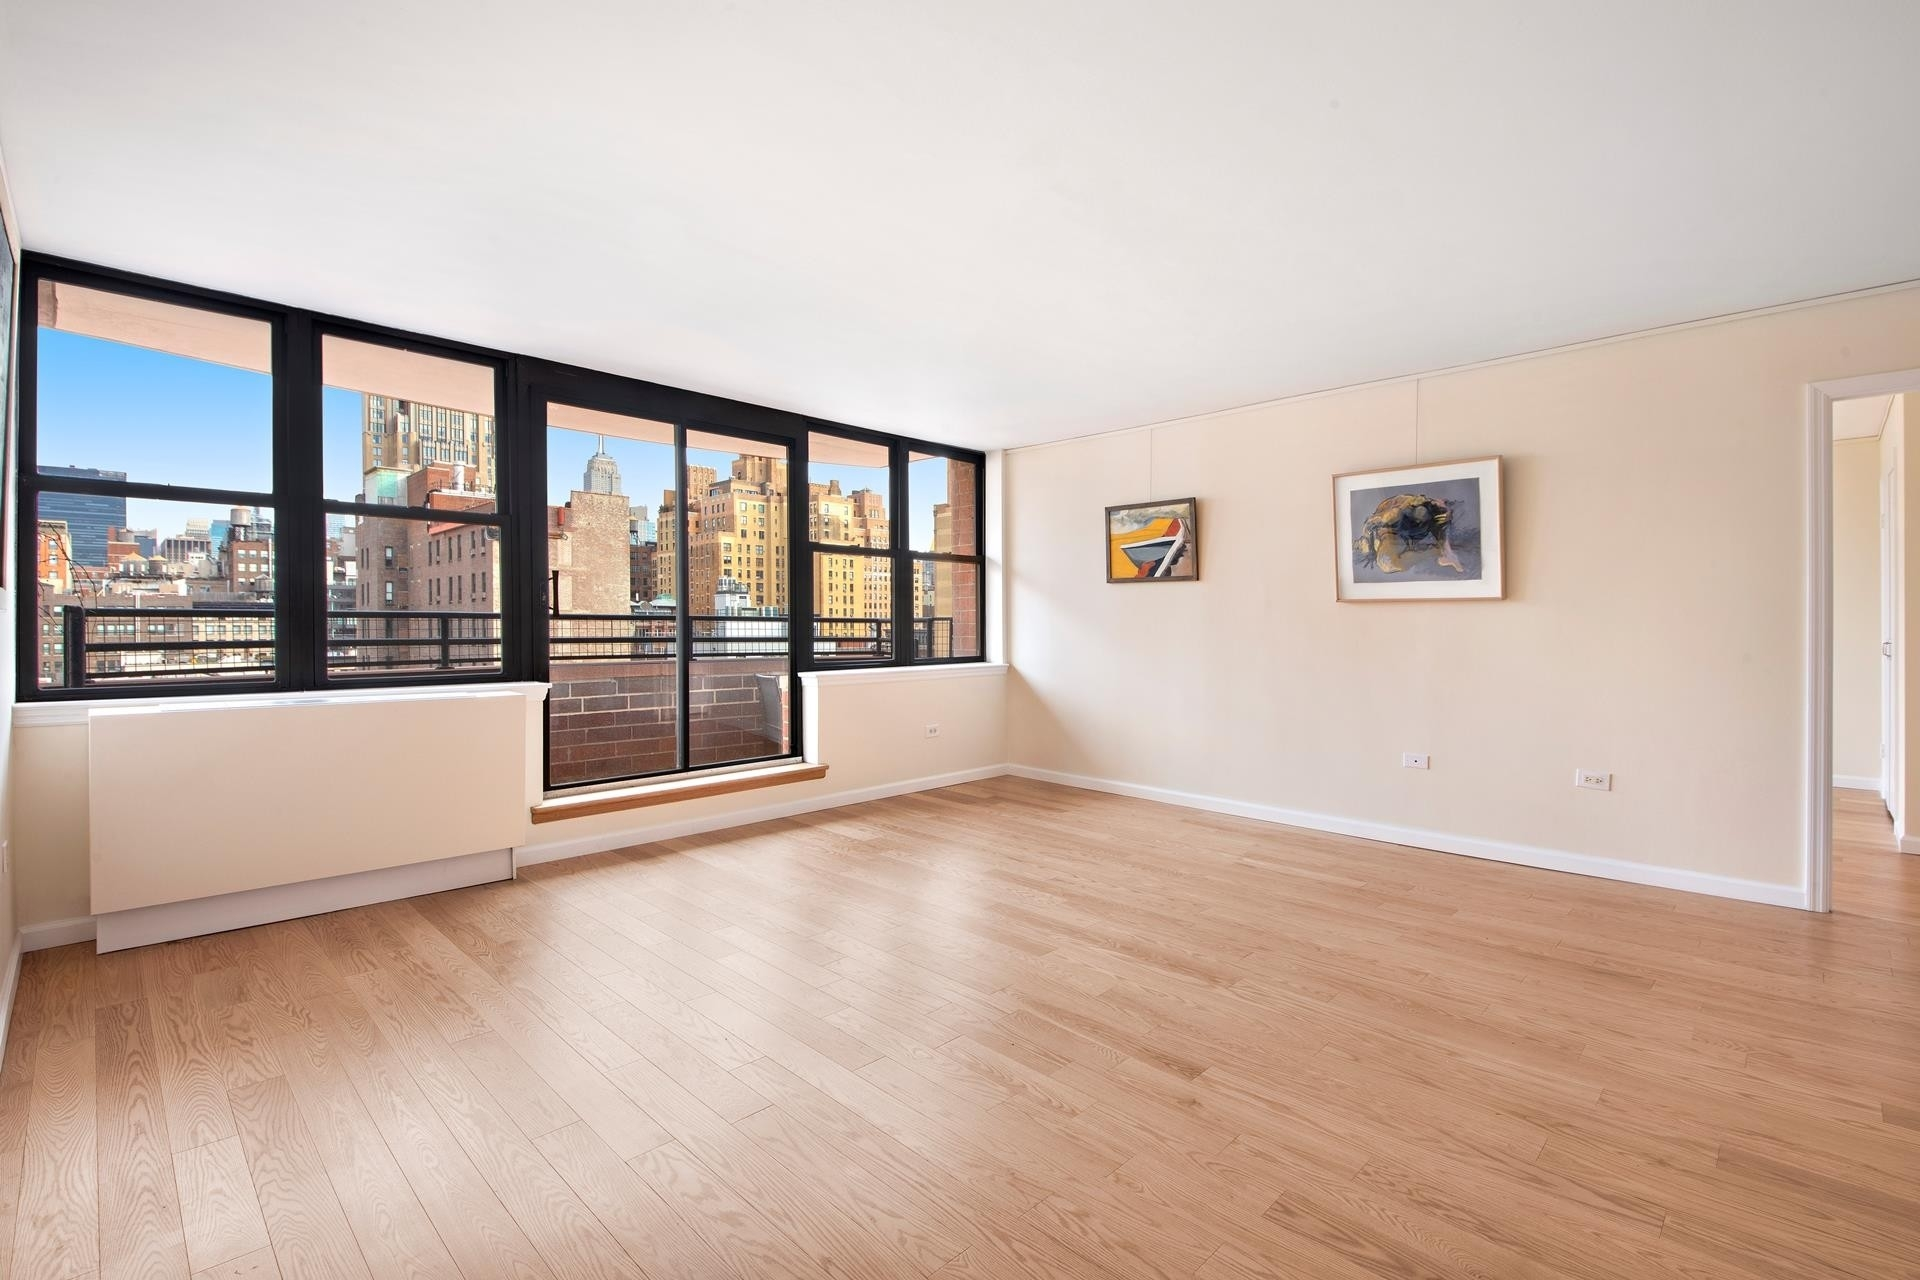 Property à Sequoia, 222 W 14TH ST , 9GH West Village, New York, NY 10011